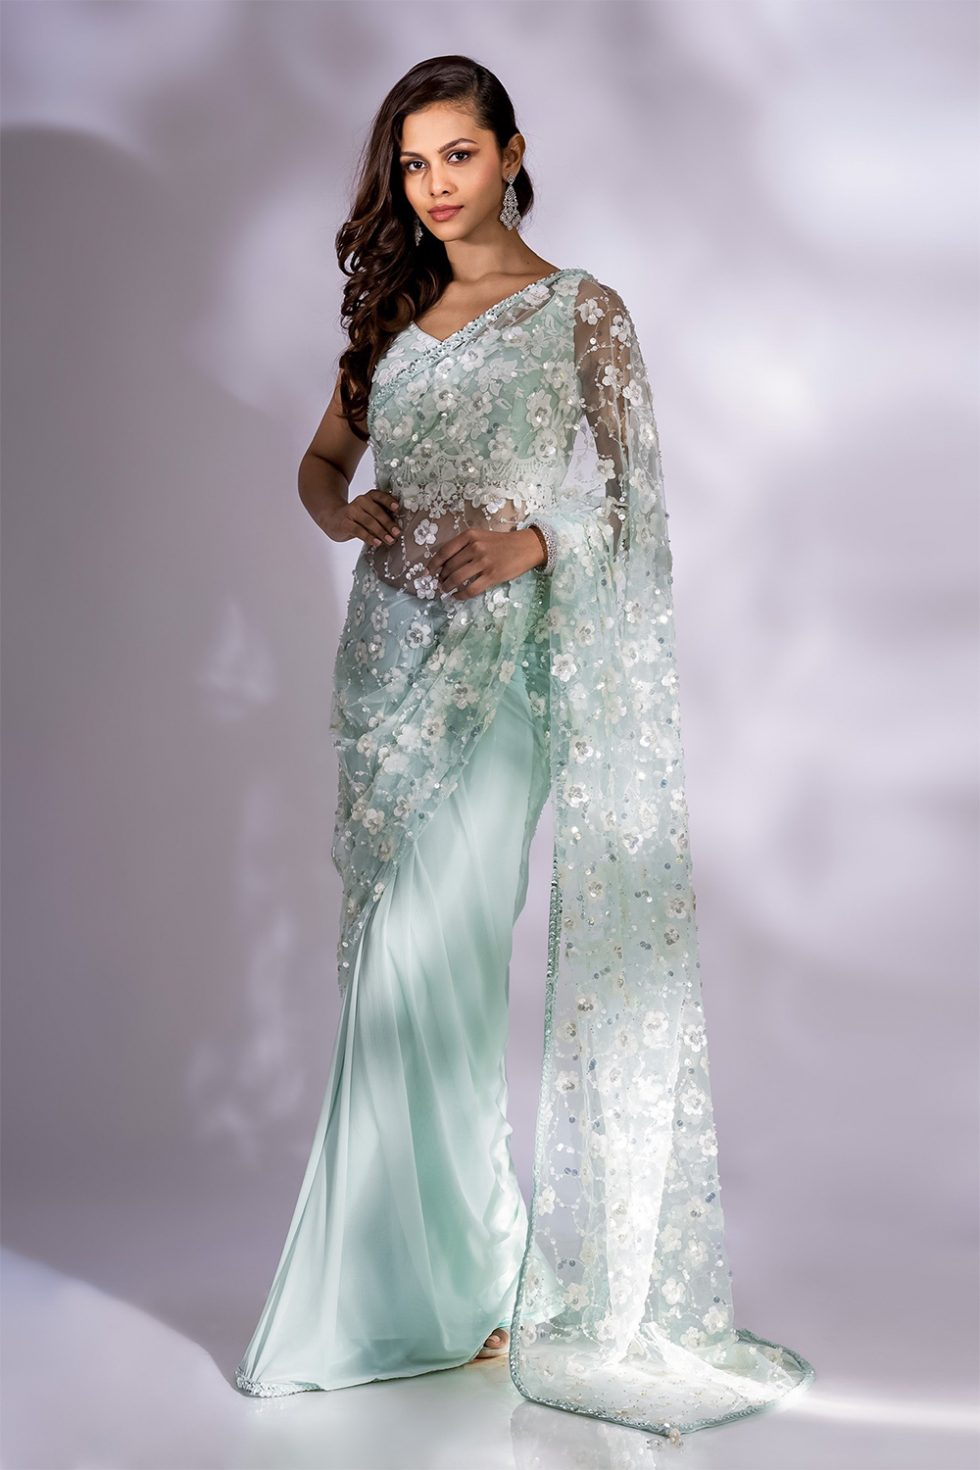 Glacial green classic saree with 3D pearl white embroidery paired with a matching blouse with threadwork and lace hem.